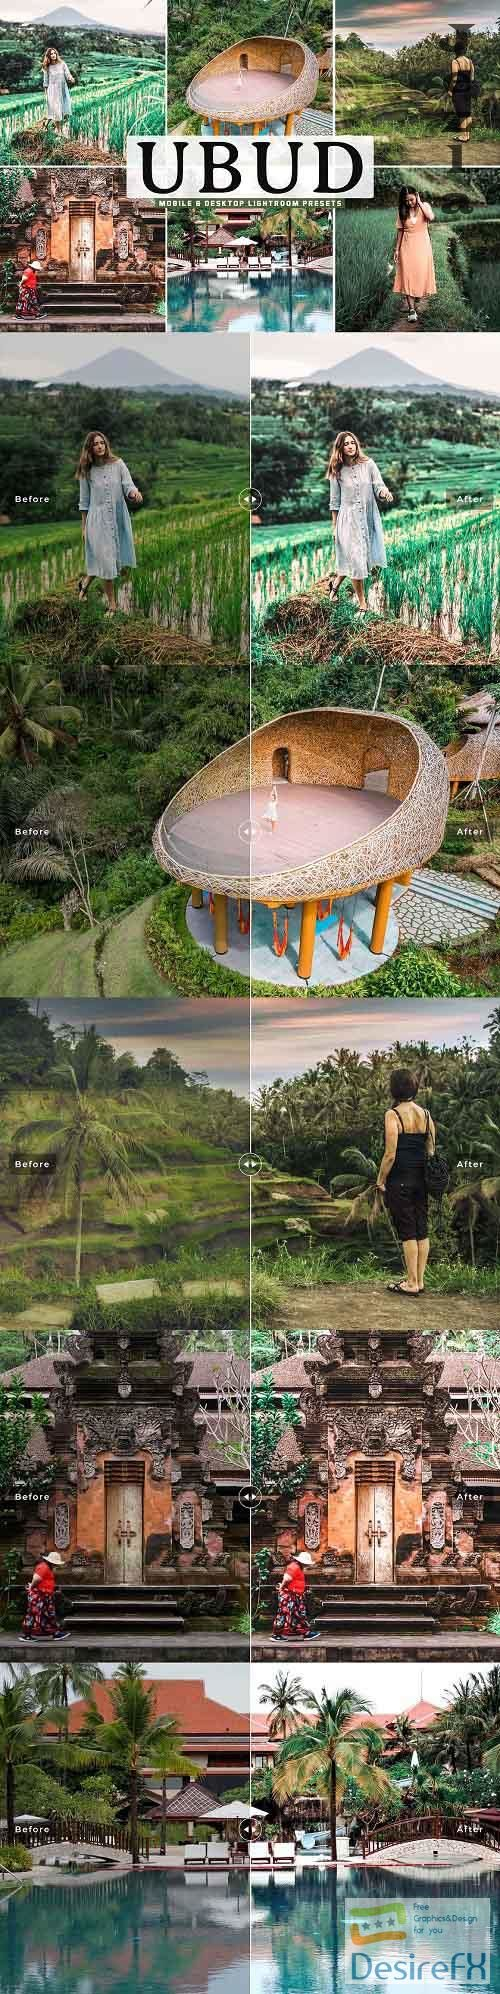 Ubud Pro Lightroom Presets - 5539577 - Mobile & Desktop